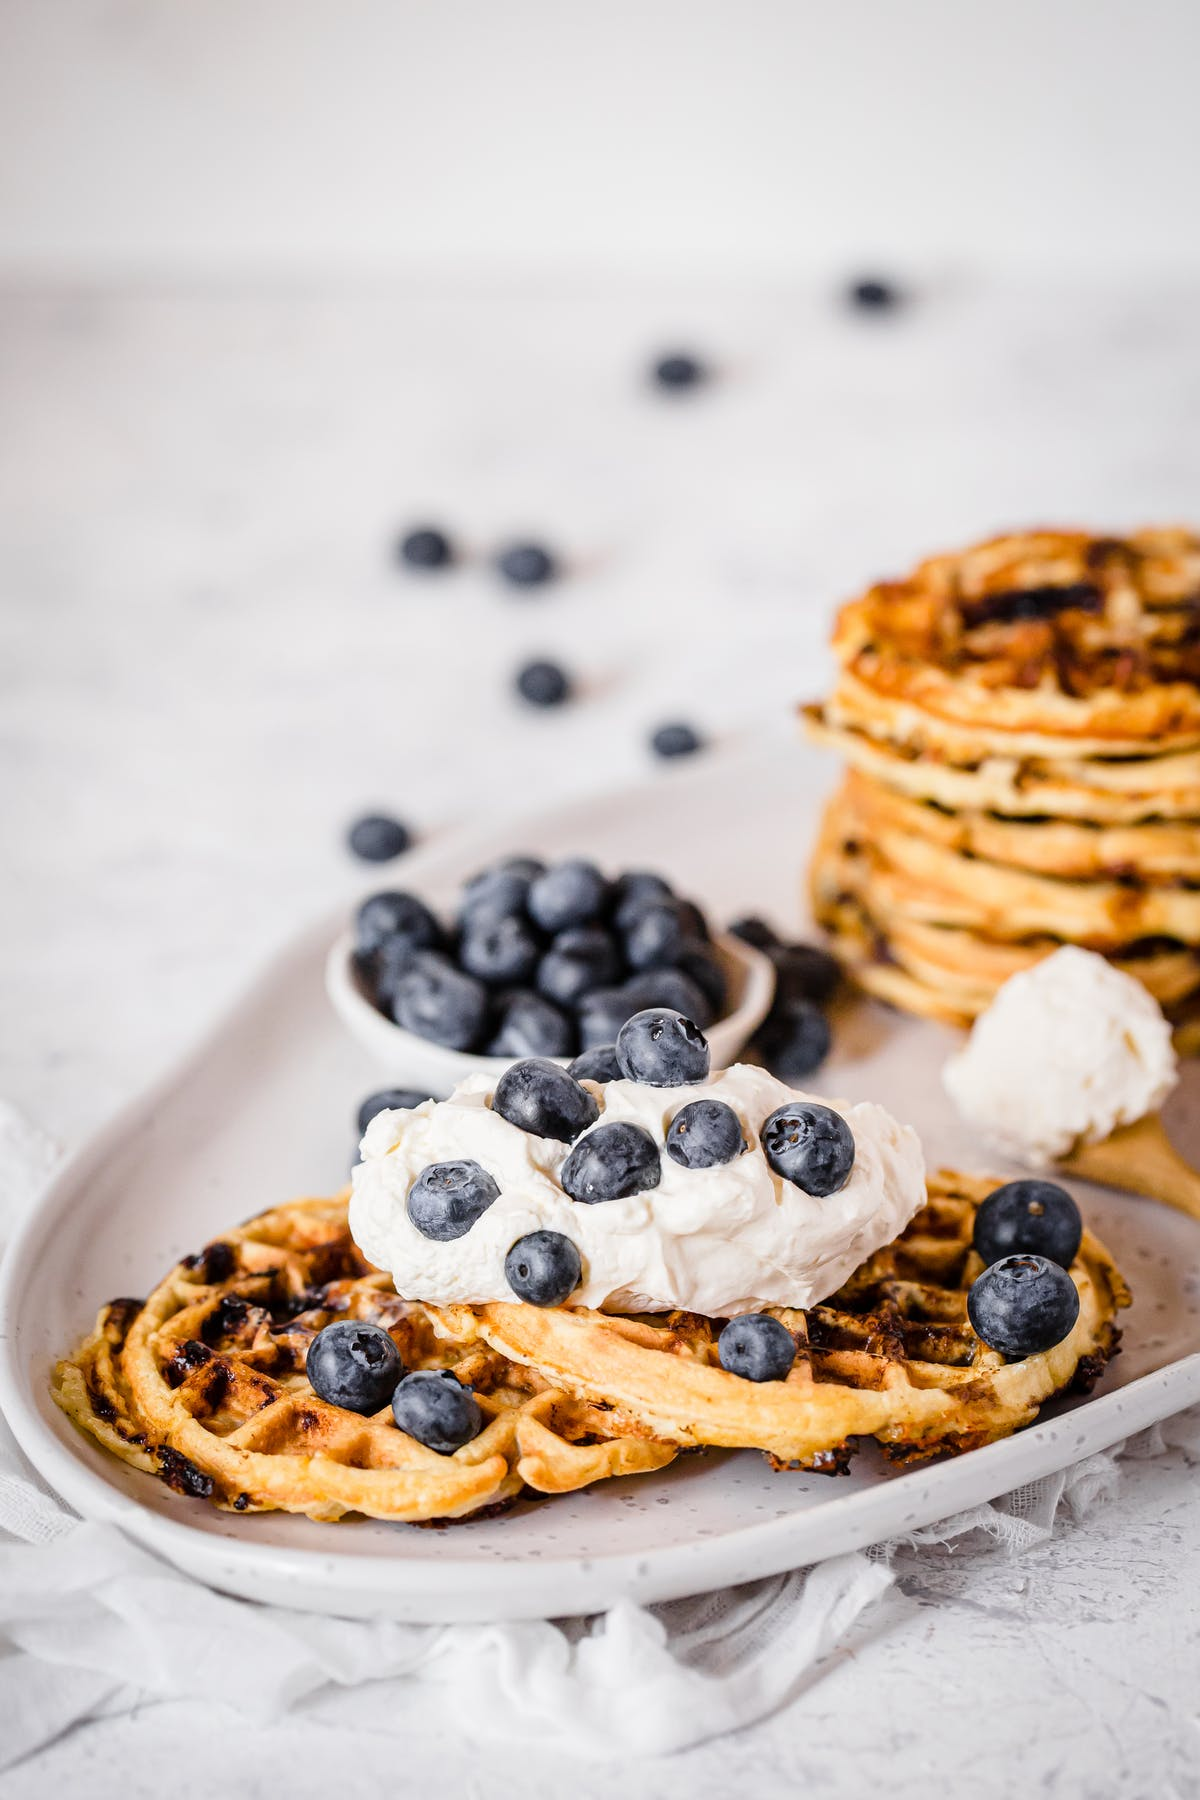 Blueberry chaffles